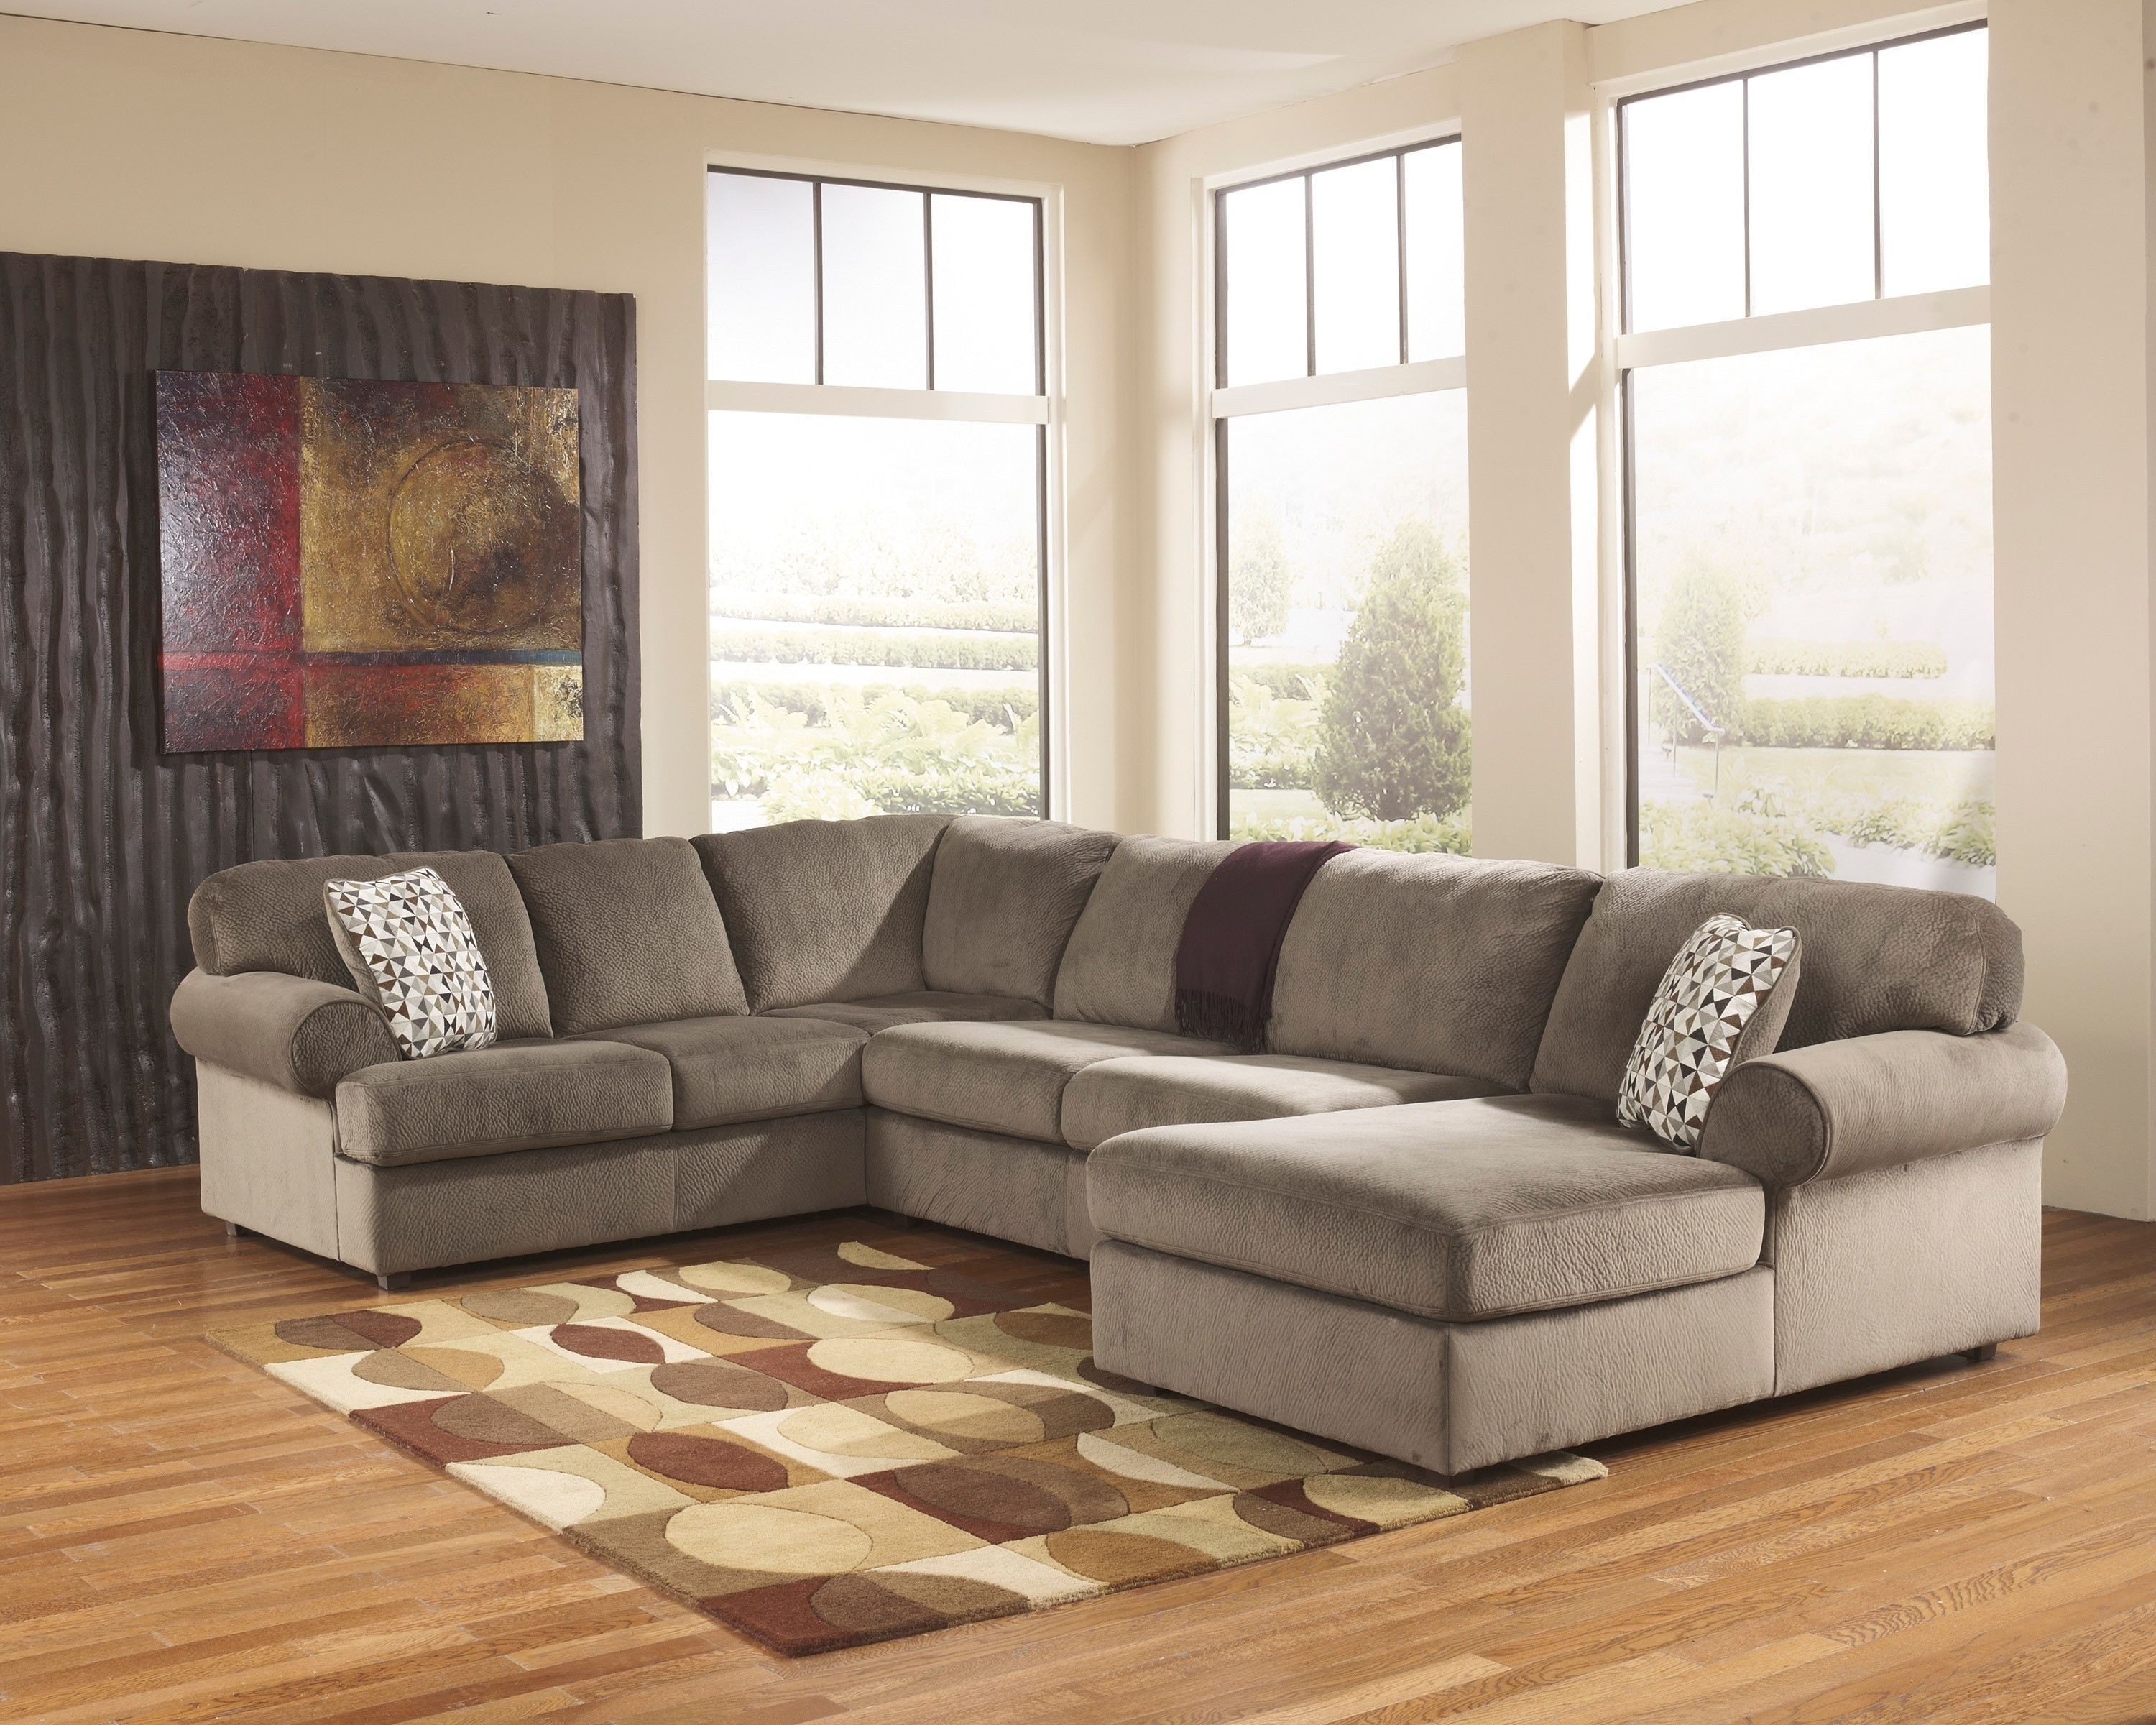 Elk Grove Ca Sectional Sofas Pertaining To Preferred Jessa Place Dune 3 Piece Sectional Sofa For $ (View 12 of 15)